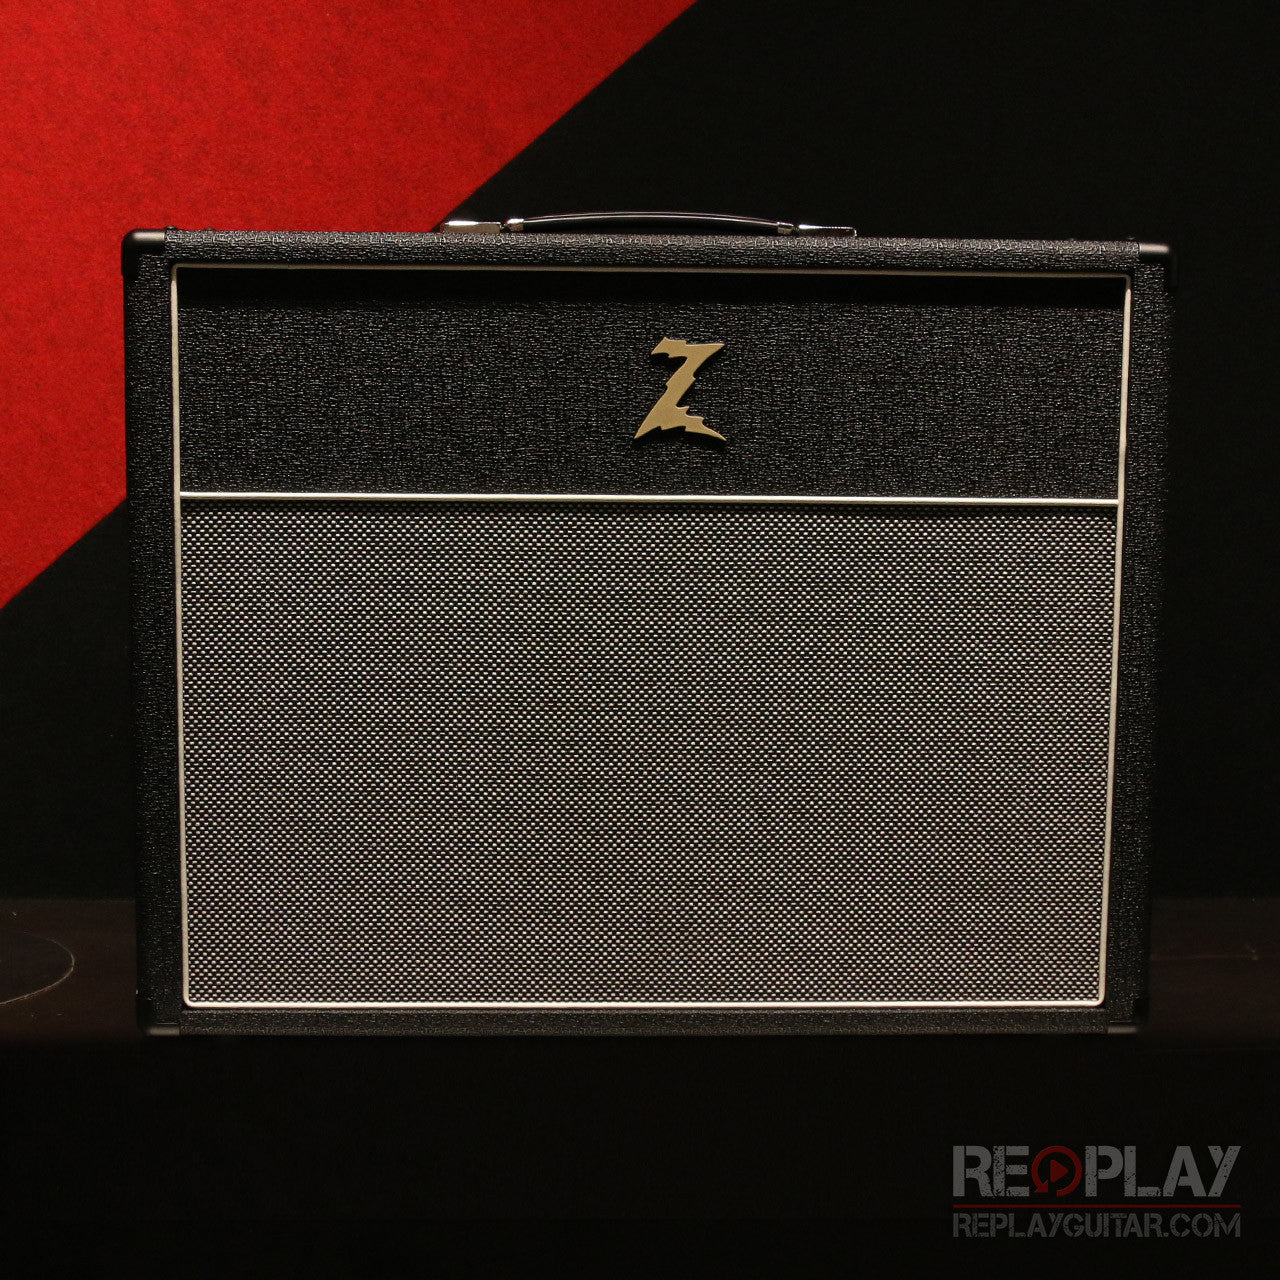 Dr. Z 2x12 Cabinet | Replay Guitar